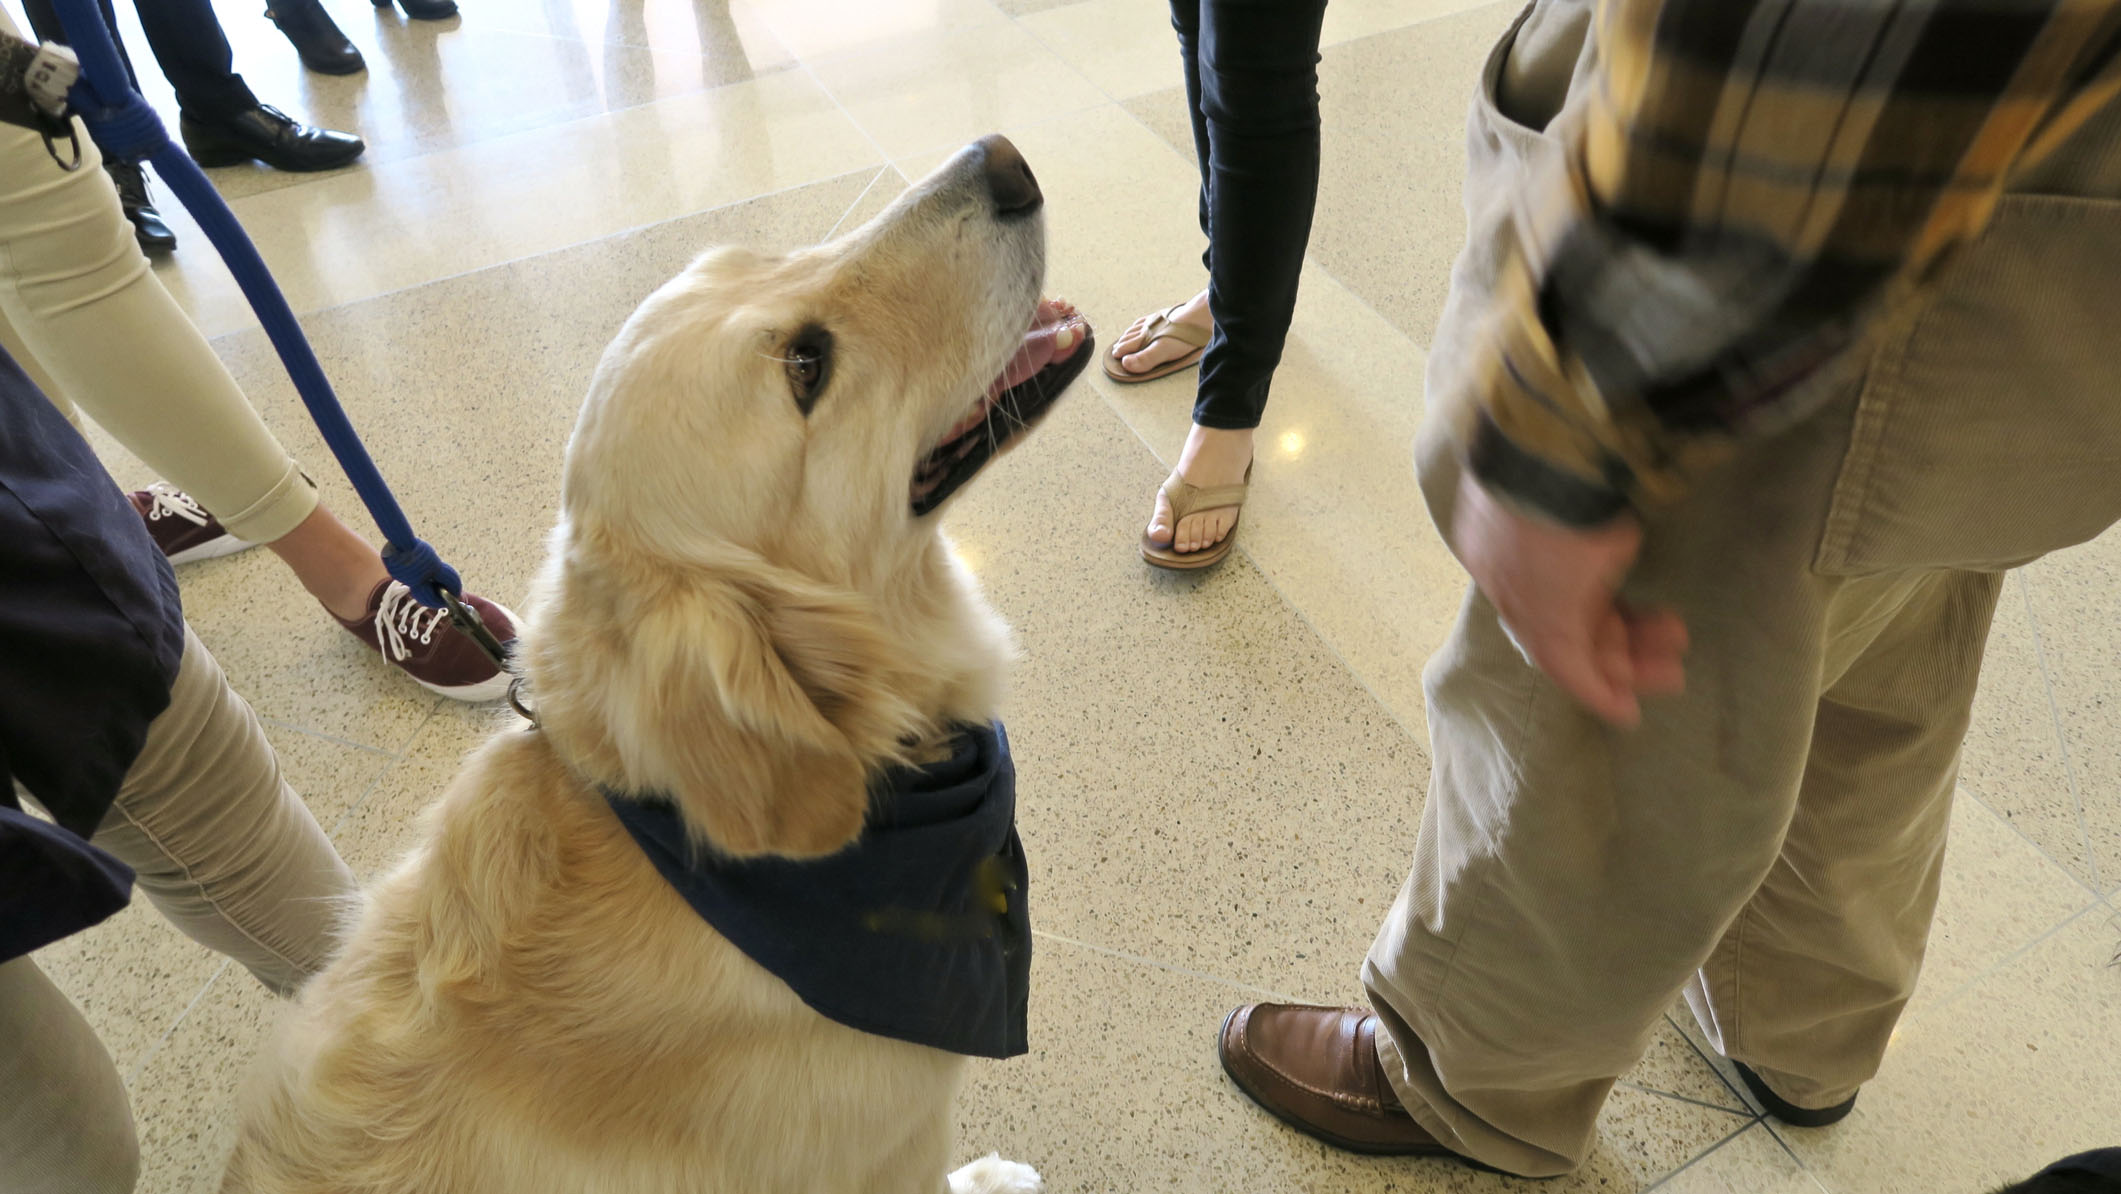 Westlake Legal Group therapy-dog Service dogs travel to El Paso to comfort victims and first responders: 'These dogs can reach places in the heart no human can' Michael Hollan fox-news/lifestyle/pets fox news fnc/lifestyle fnc article 10852f5e-00e7-5c2b-9ebe-69c9730989aa